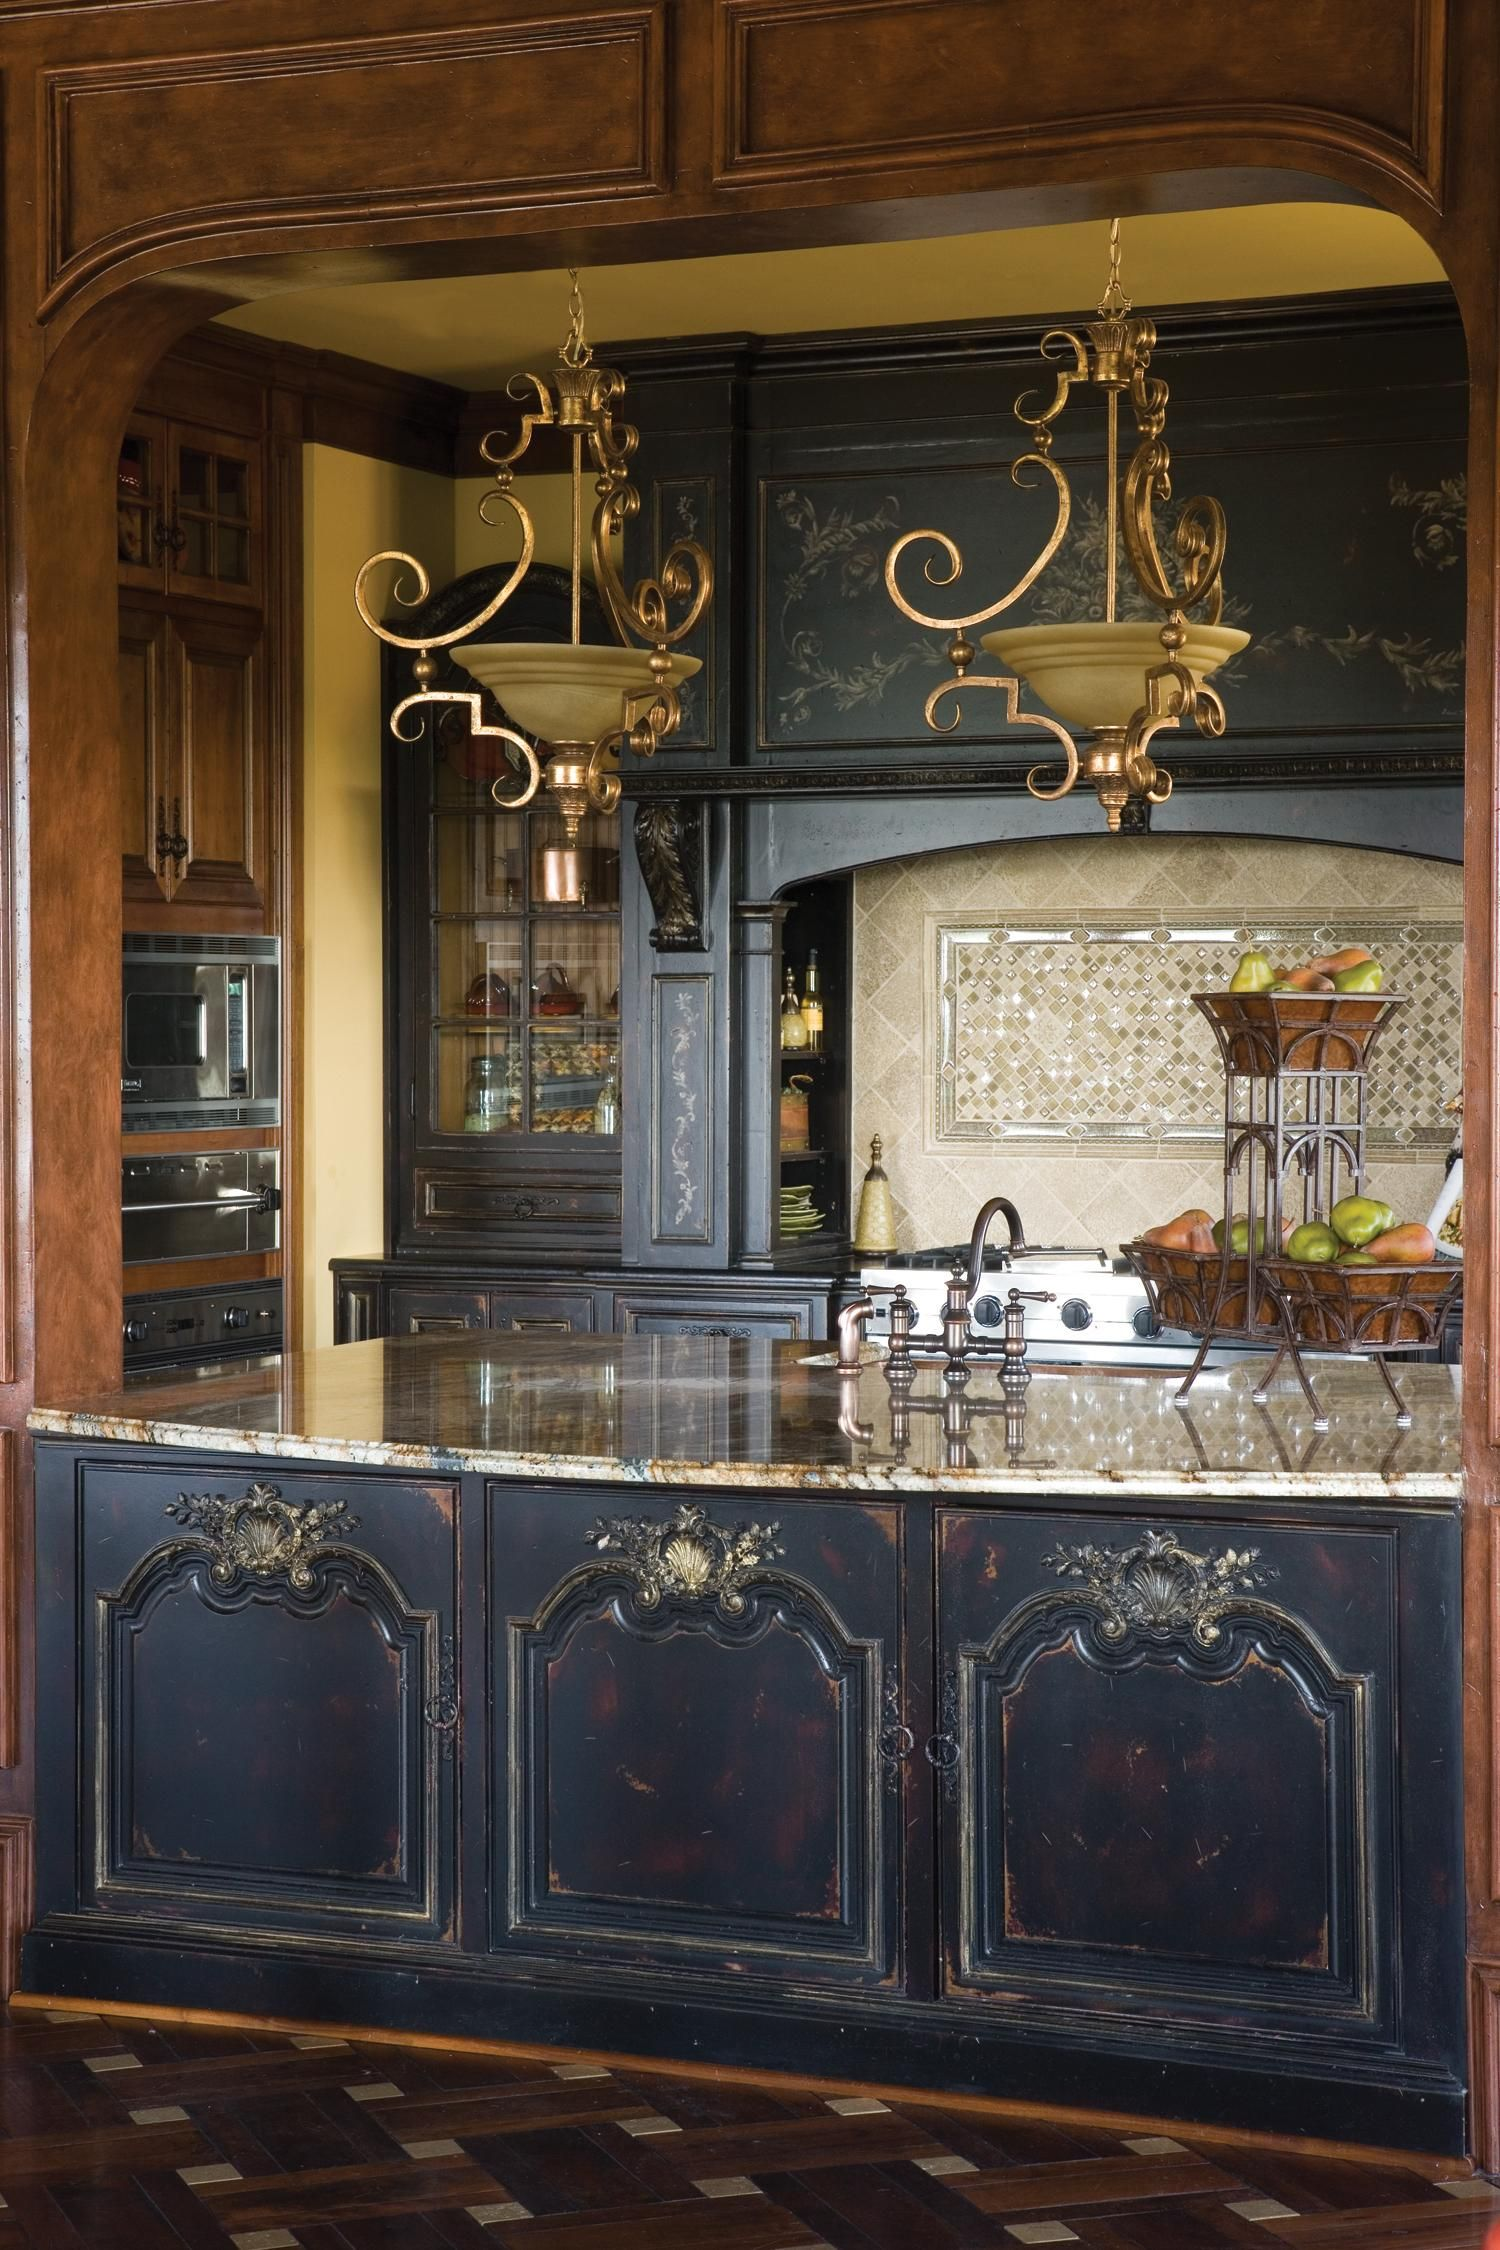 Habersham Cabinetry Beautiful Detail Kitchen Cabinetry Beautiful Kitchens Kitchen Inspirations